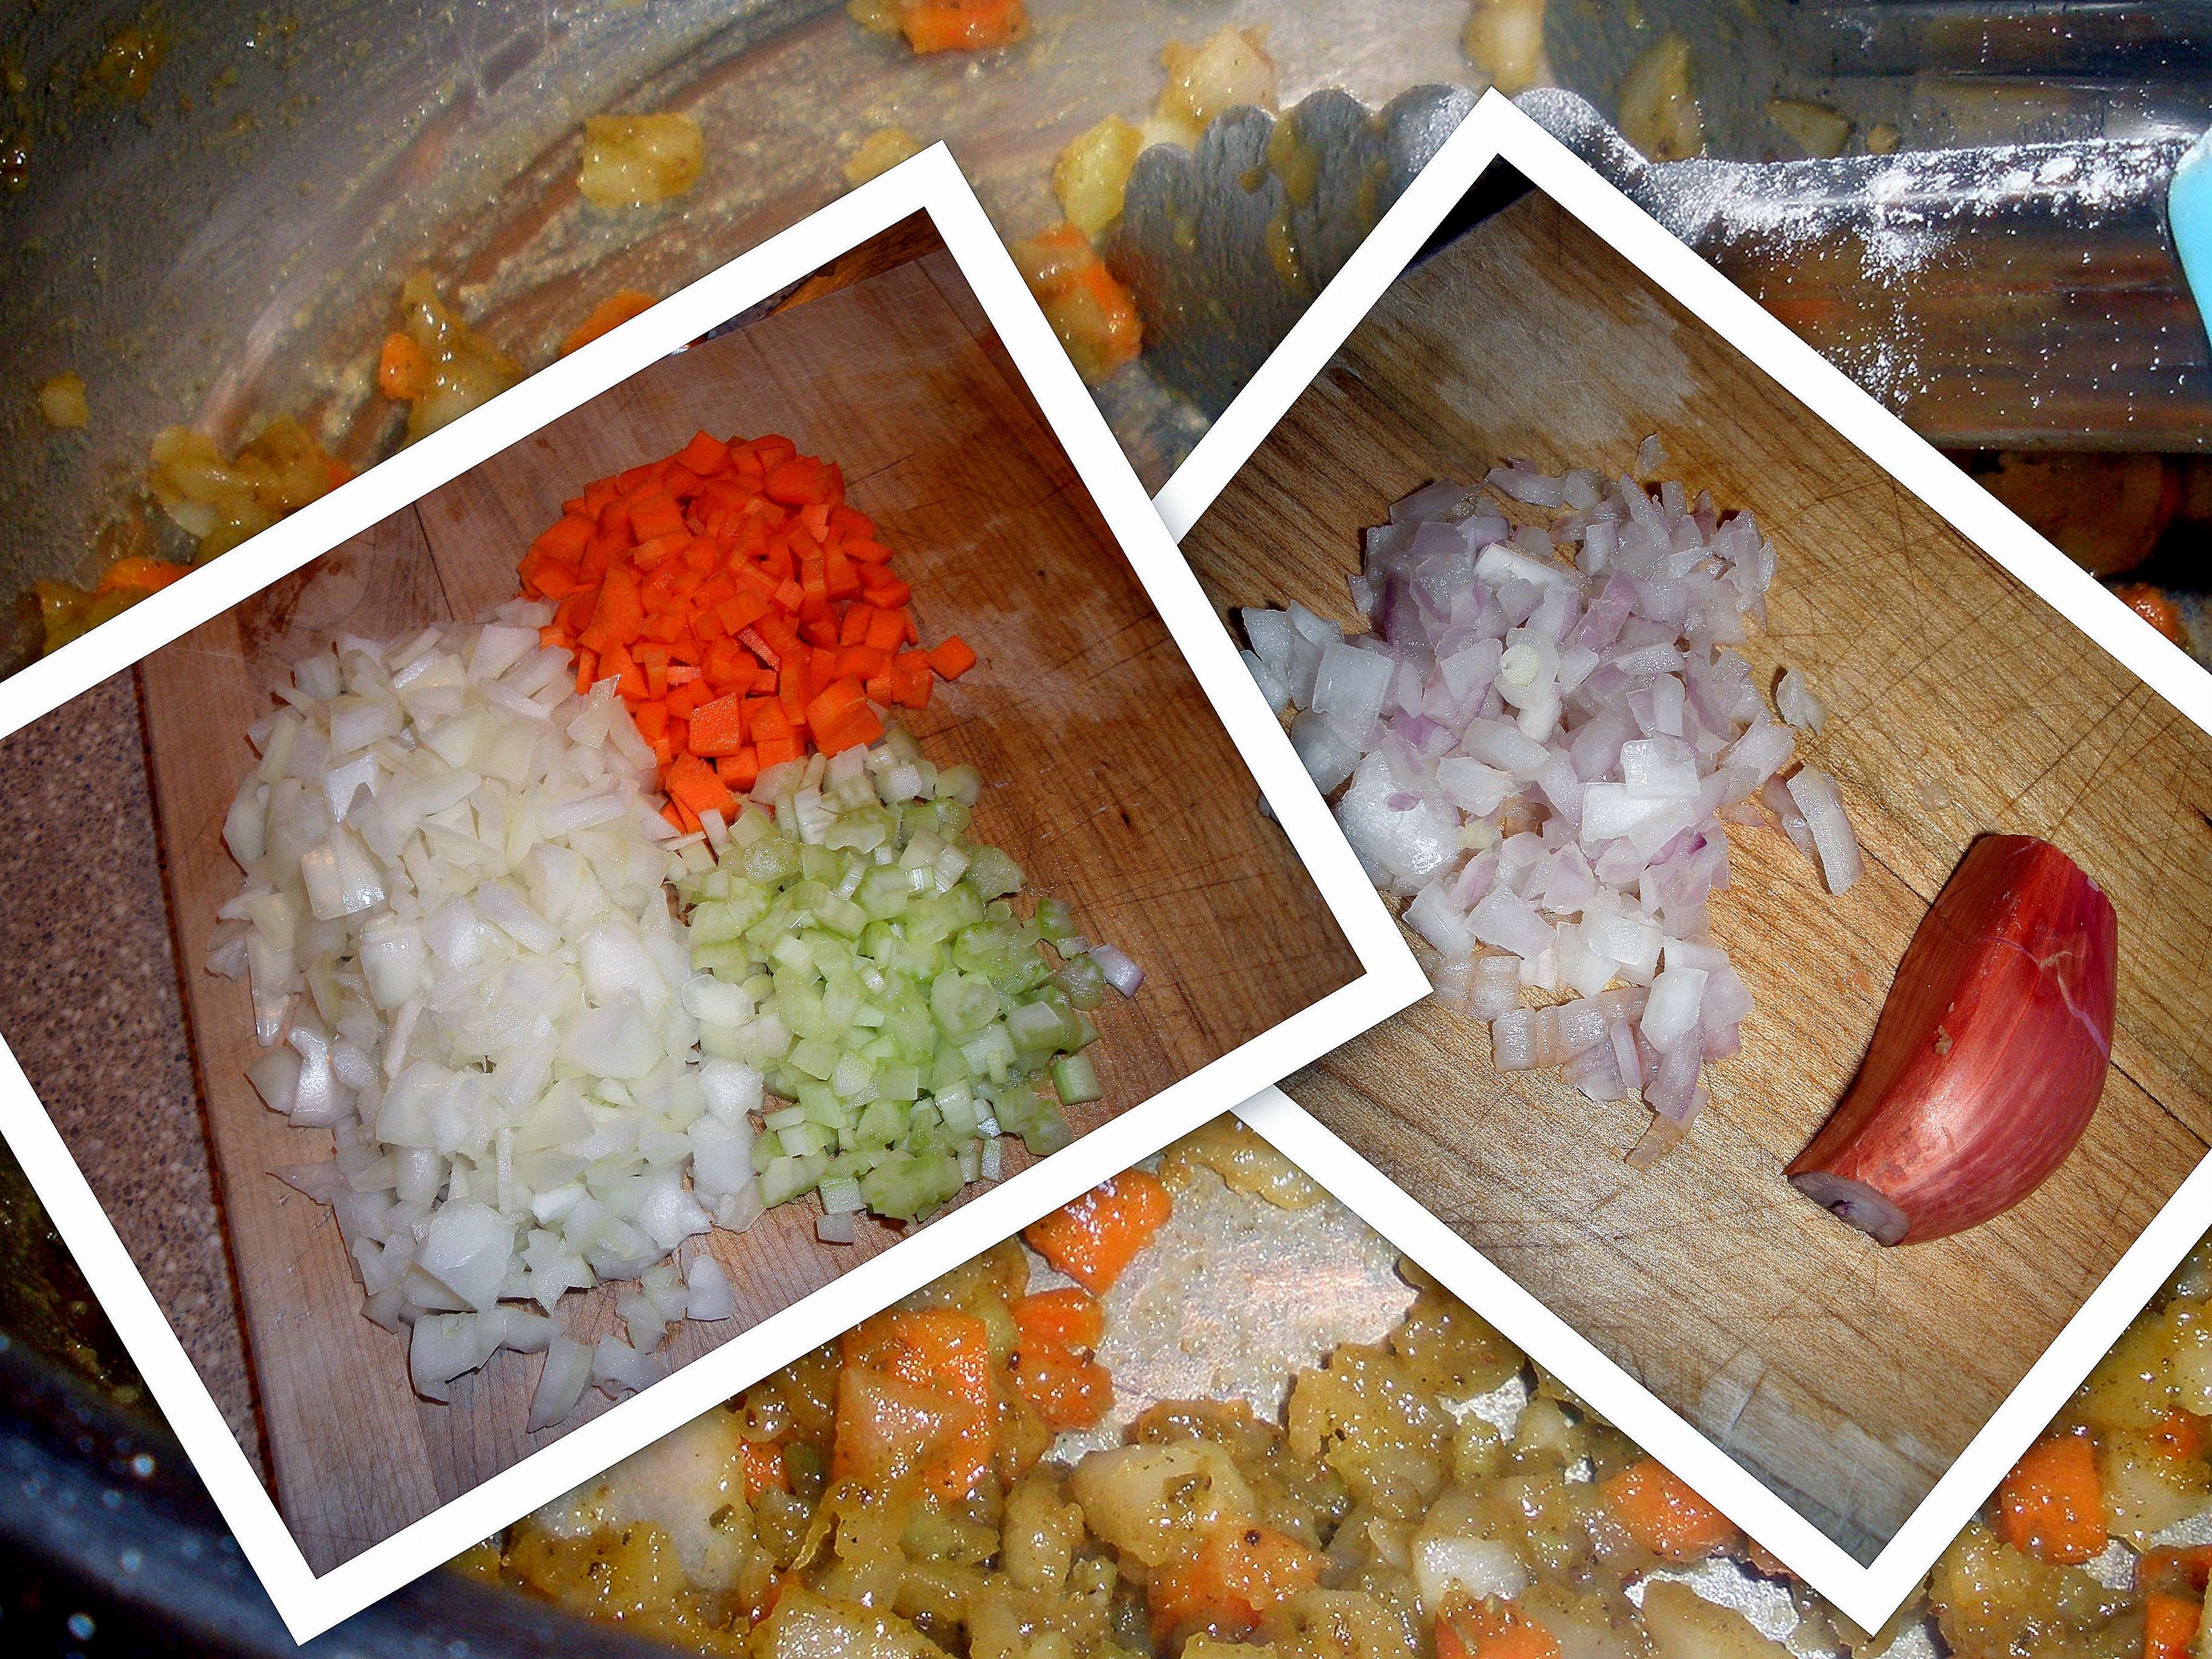 dice onions, carrots, celery and shallot